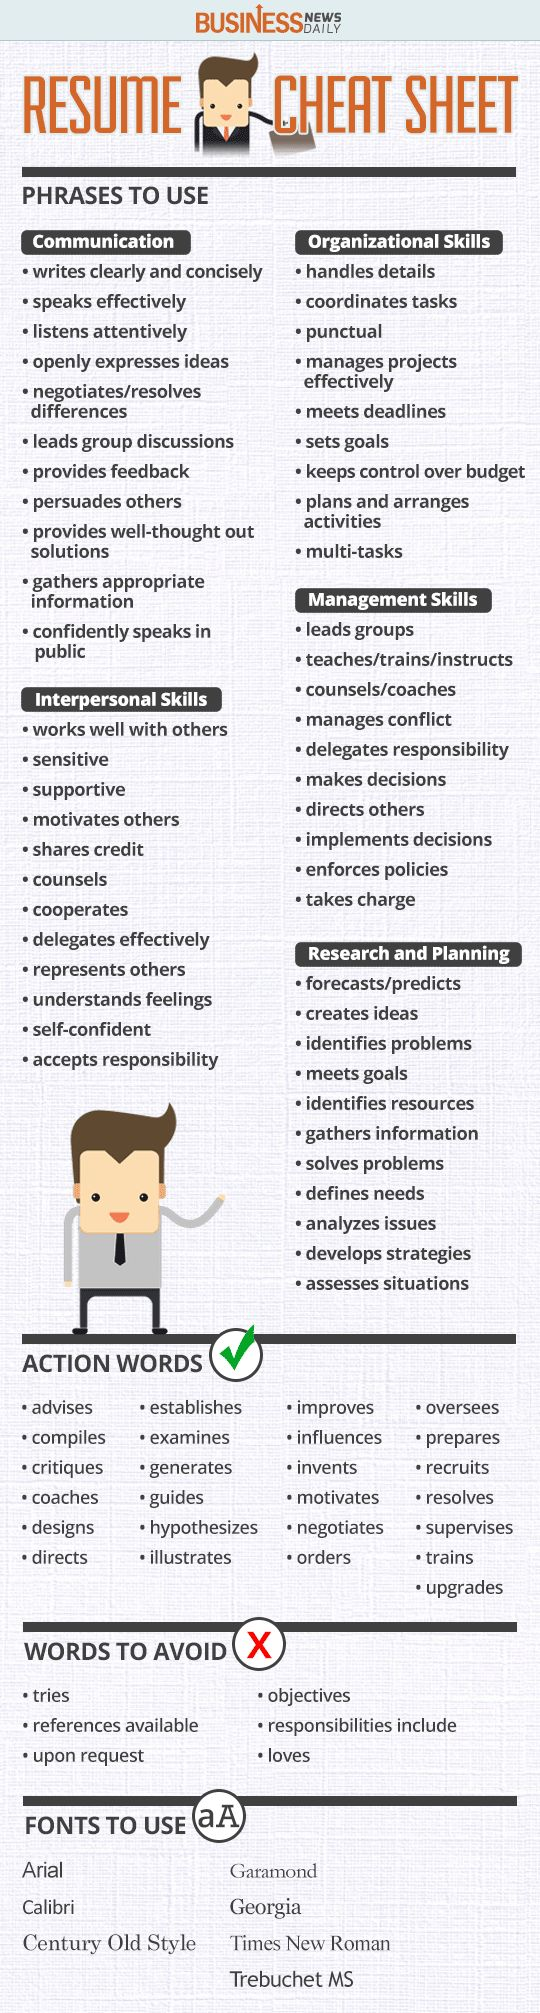 Picnictoimpeachus  Winsome  Ideas About Resume On Pinterest  Cv Format Resume Cv And  With Remarkable Resume Cheat Sheet Infographic Andrews Almost Done With A Complete Unit On Employment Which With Comely Samples Of Customer Service Resumes Also It Internship Resume In Addition First Year Teacher Resume Examples And Professional Memberships On Resume As Well As Career Counselor Resume Additionally Free Make A Resume From Pinterestcom With Picnictoimpeachus  Remarkable  Ideas About Resume On Pinterest  Cv Format Resume Cv And  With Comely Resume Cheat Sheet Infographic Andrews Almost Done With A Complete Unit On Employment Which And Winsome Samples Of Customer Service Resumes Also It Internship Resume In Addition First Year Teacher Resume Examples From Pinterestcom